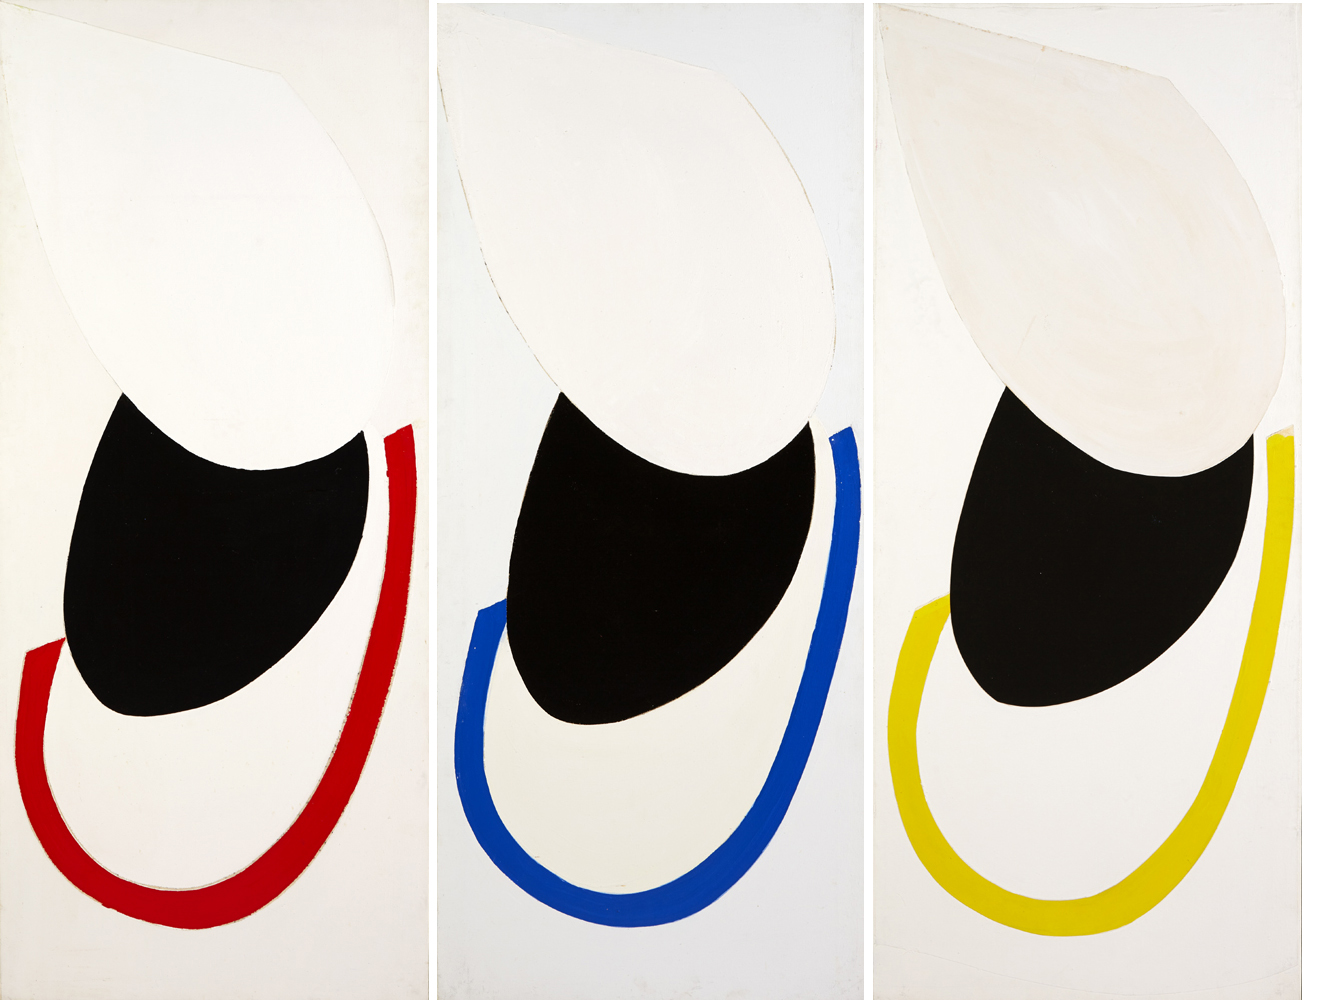 SUSPENDED FORMS TRIPTYCH [RED, BLUE AND YELLOW], 1982 by Sir Terry Frost sold for €30,000 at Whyte's Auctions